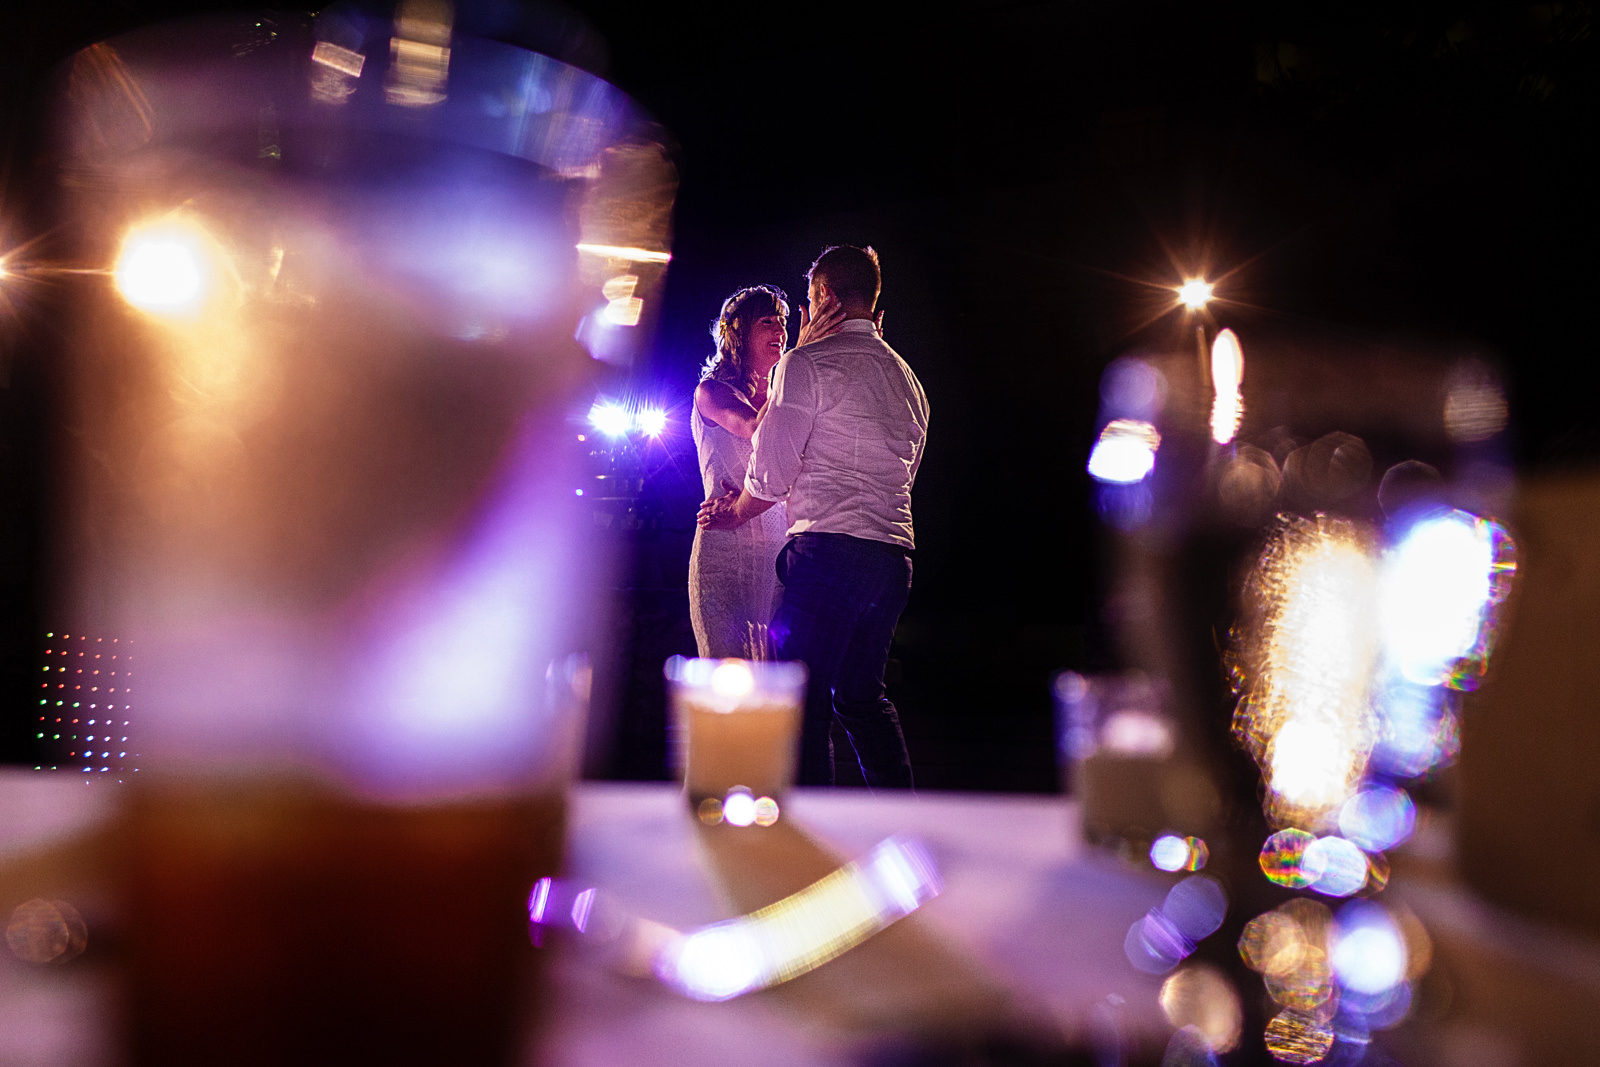 Groom and bride dance through some glasses on the table